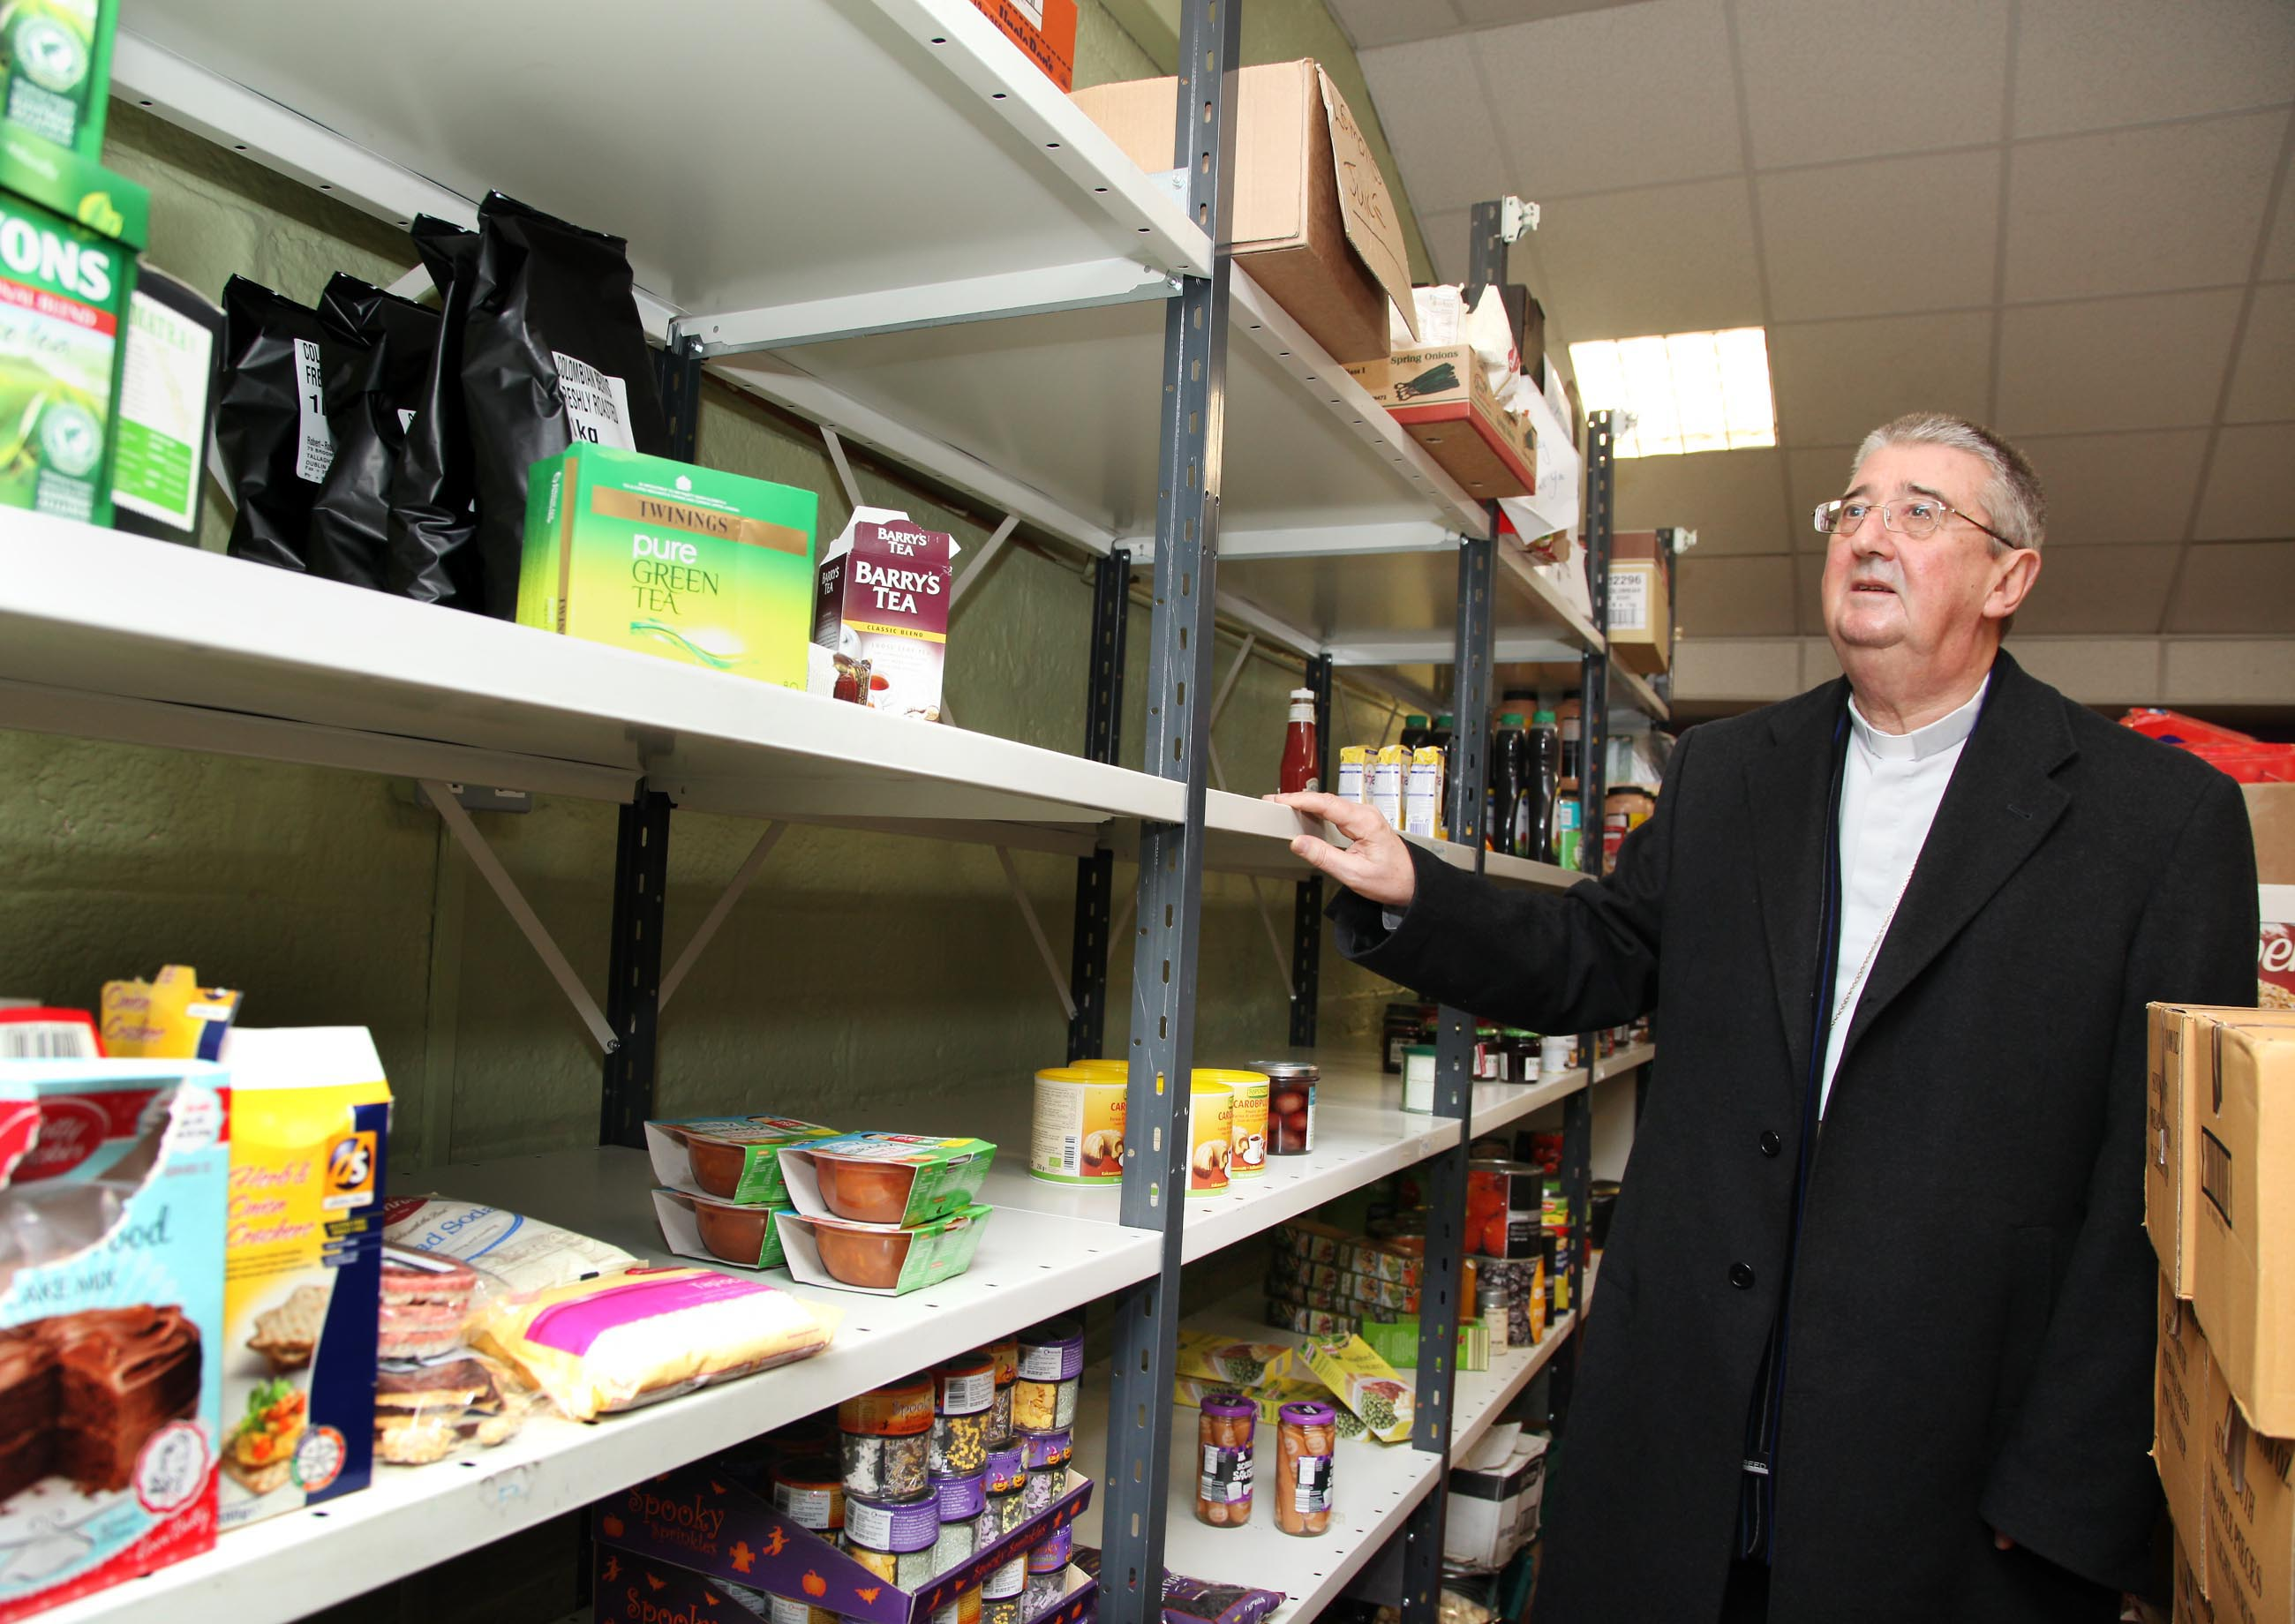 ARCHBISHOP LAUNCHES CHRISTMAS DIOCESAN FOOD APPEAL